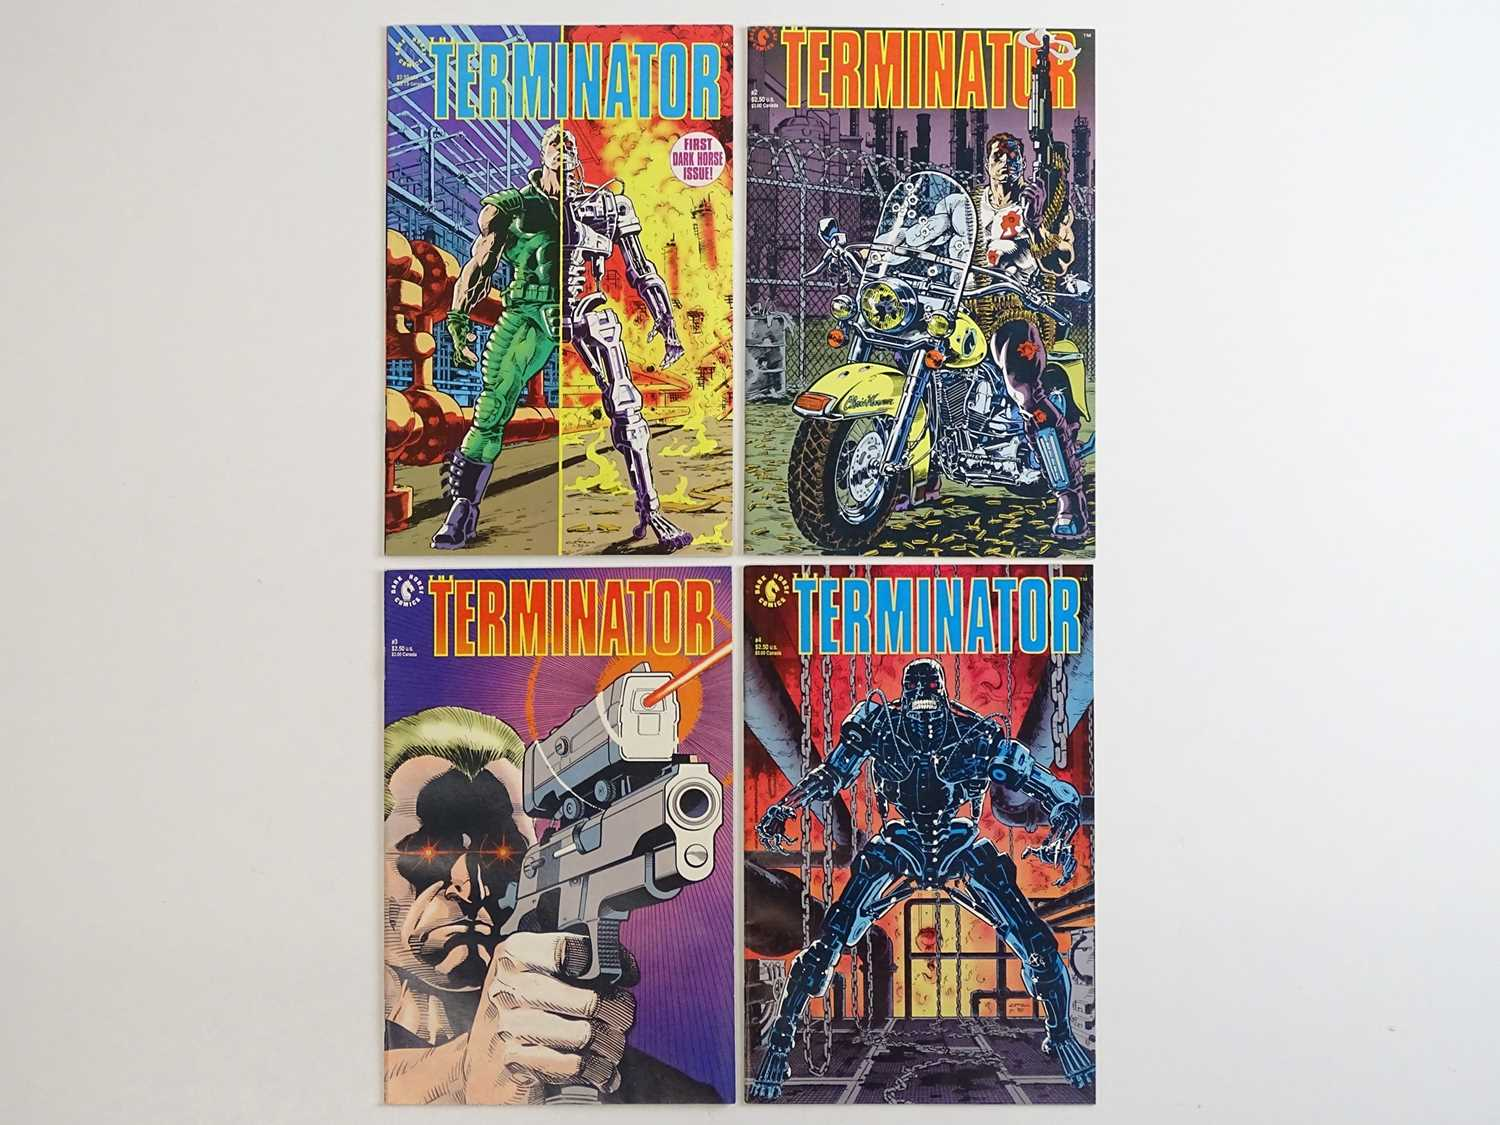 TERMINATOR #1, 2, 3, 4 - (4 in Lot) - (1990 - DARK HORSE) - ALL First Printings - Complete 4 x Issue